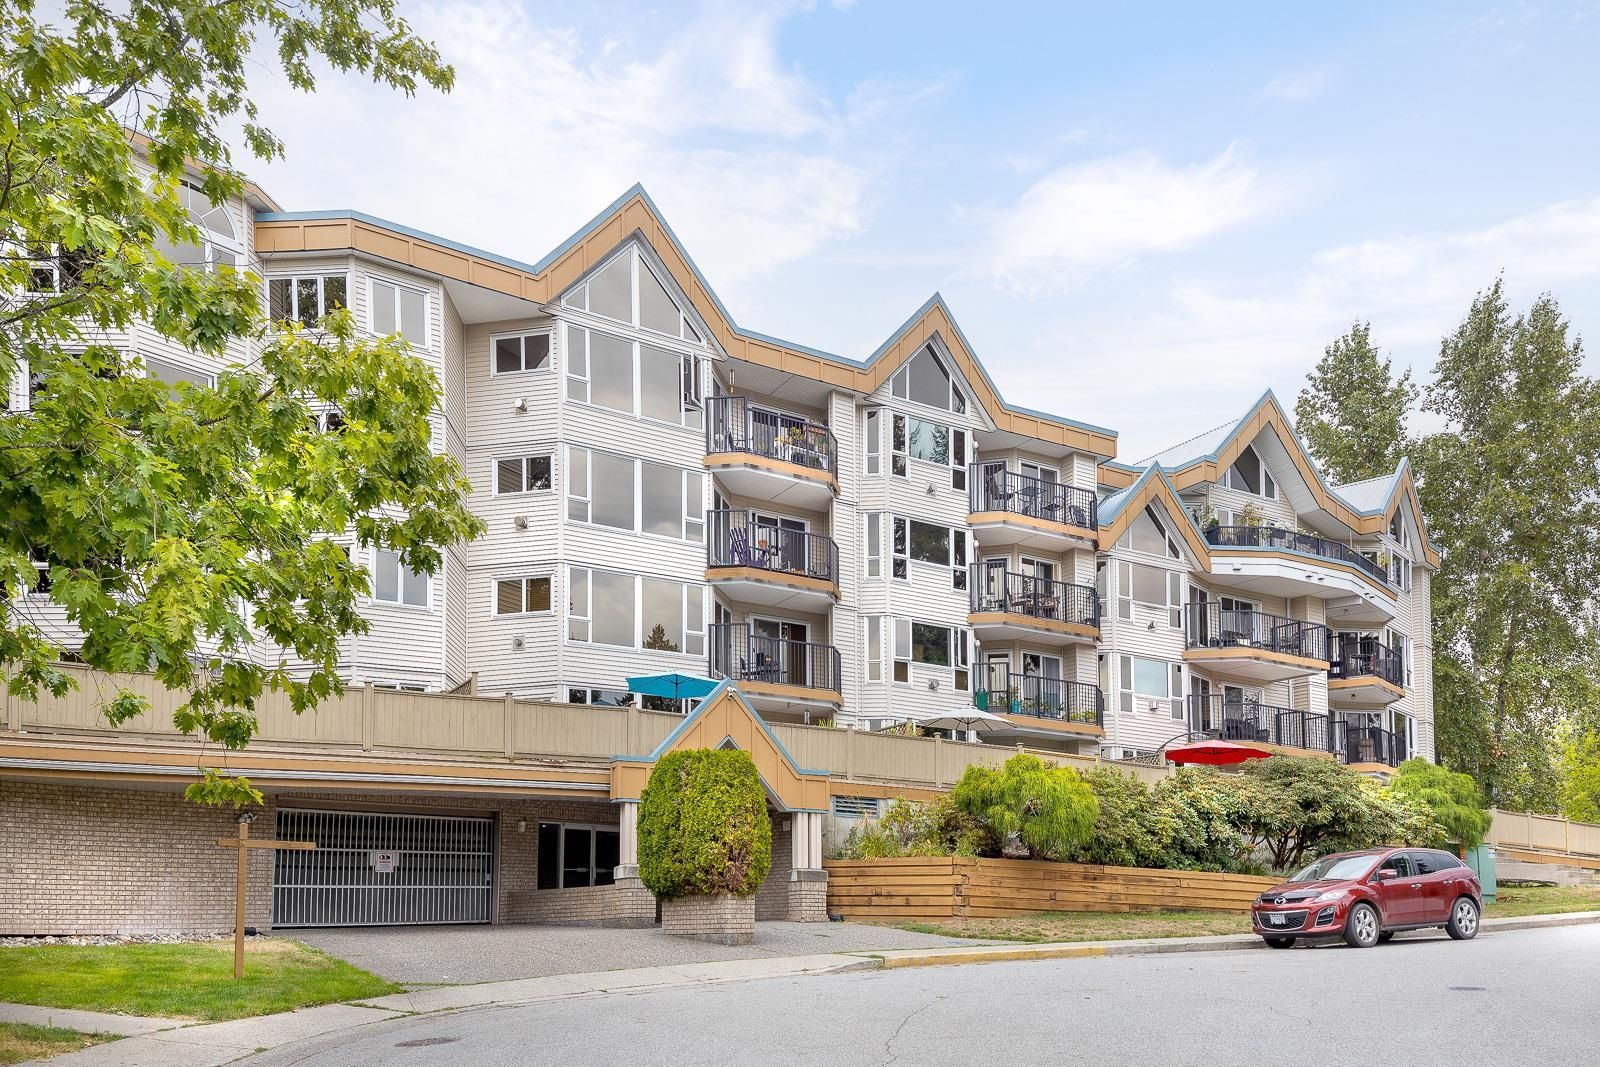 """Main Photo: 112 11595 FRASER Street in Maple Ridge: East Central Condo for sale in """"BRICKWOOD PLACE"""" : MLS®# R2611316"""